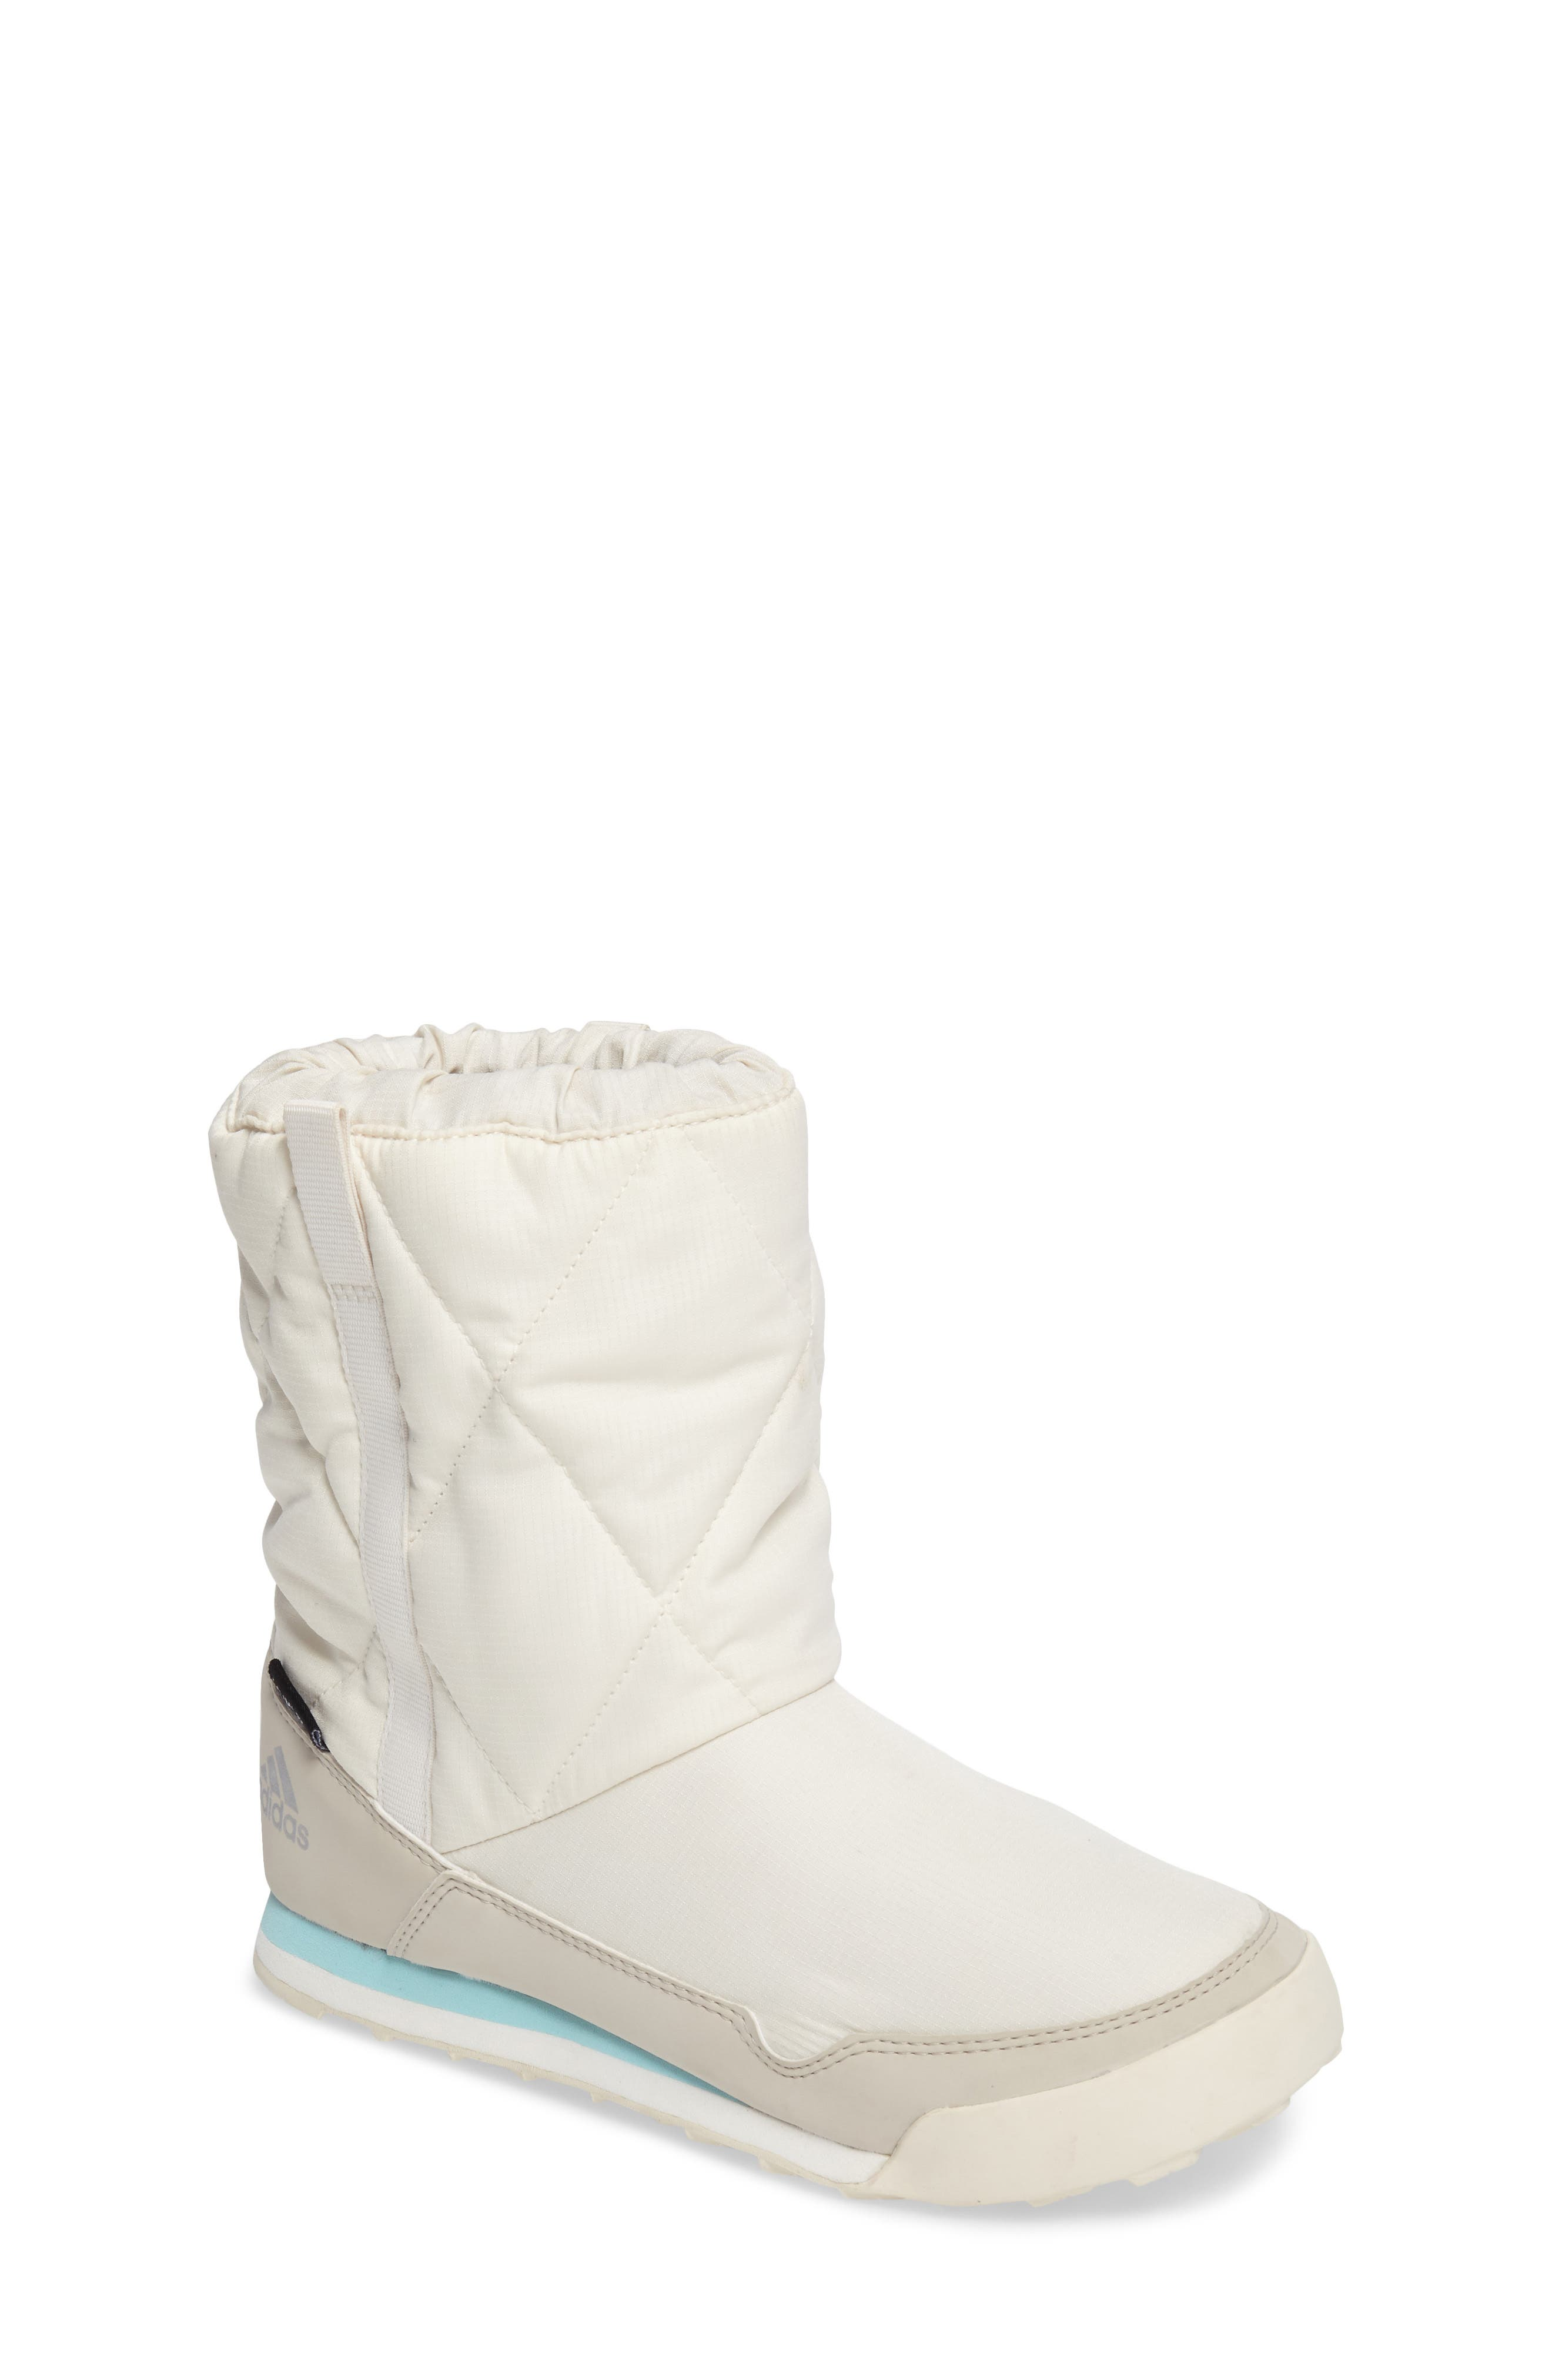 CW Snowpitch Insulated Waterproof Boot,                             Main thumbnail 1, color,                             Chalk White/ Clear Brown/ Aqua